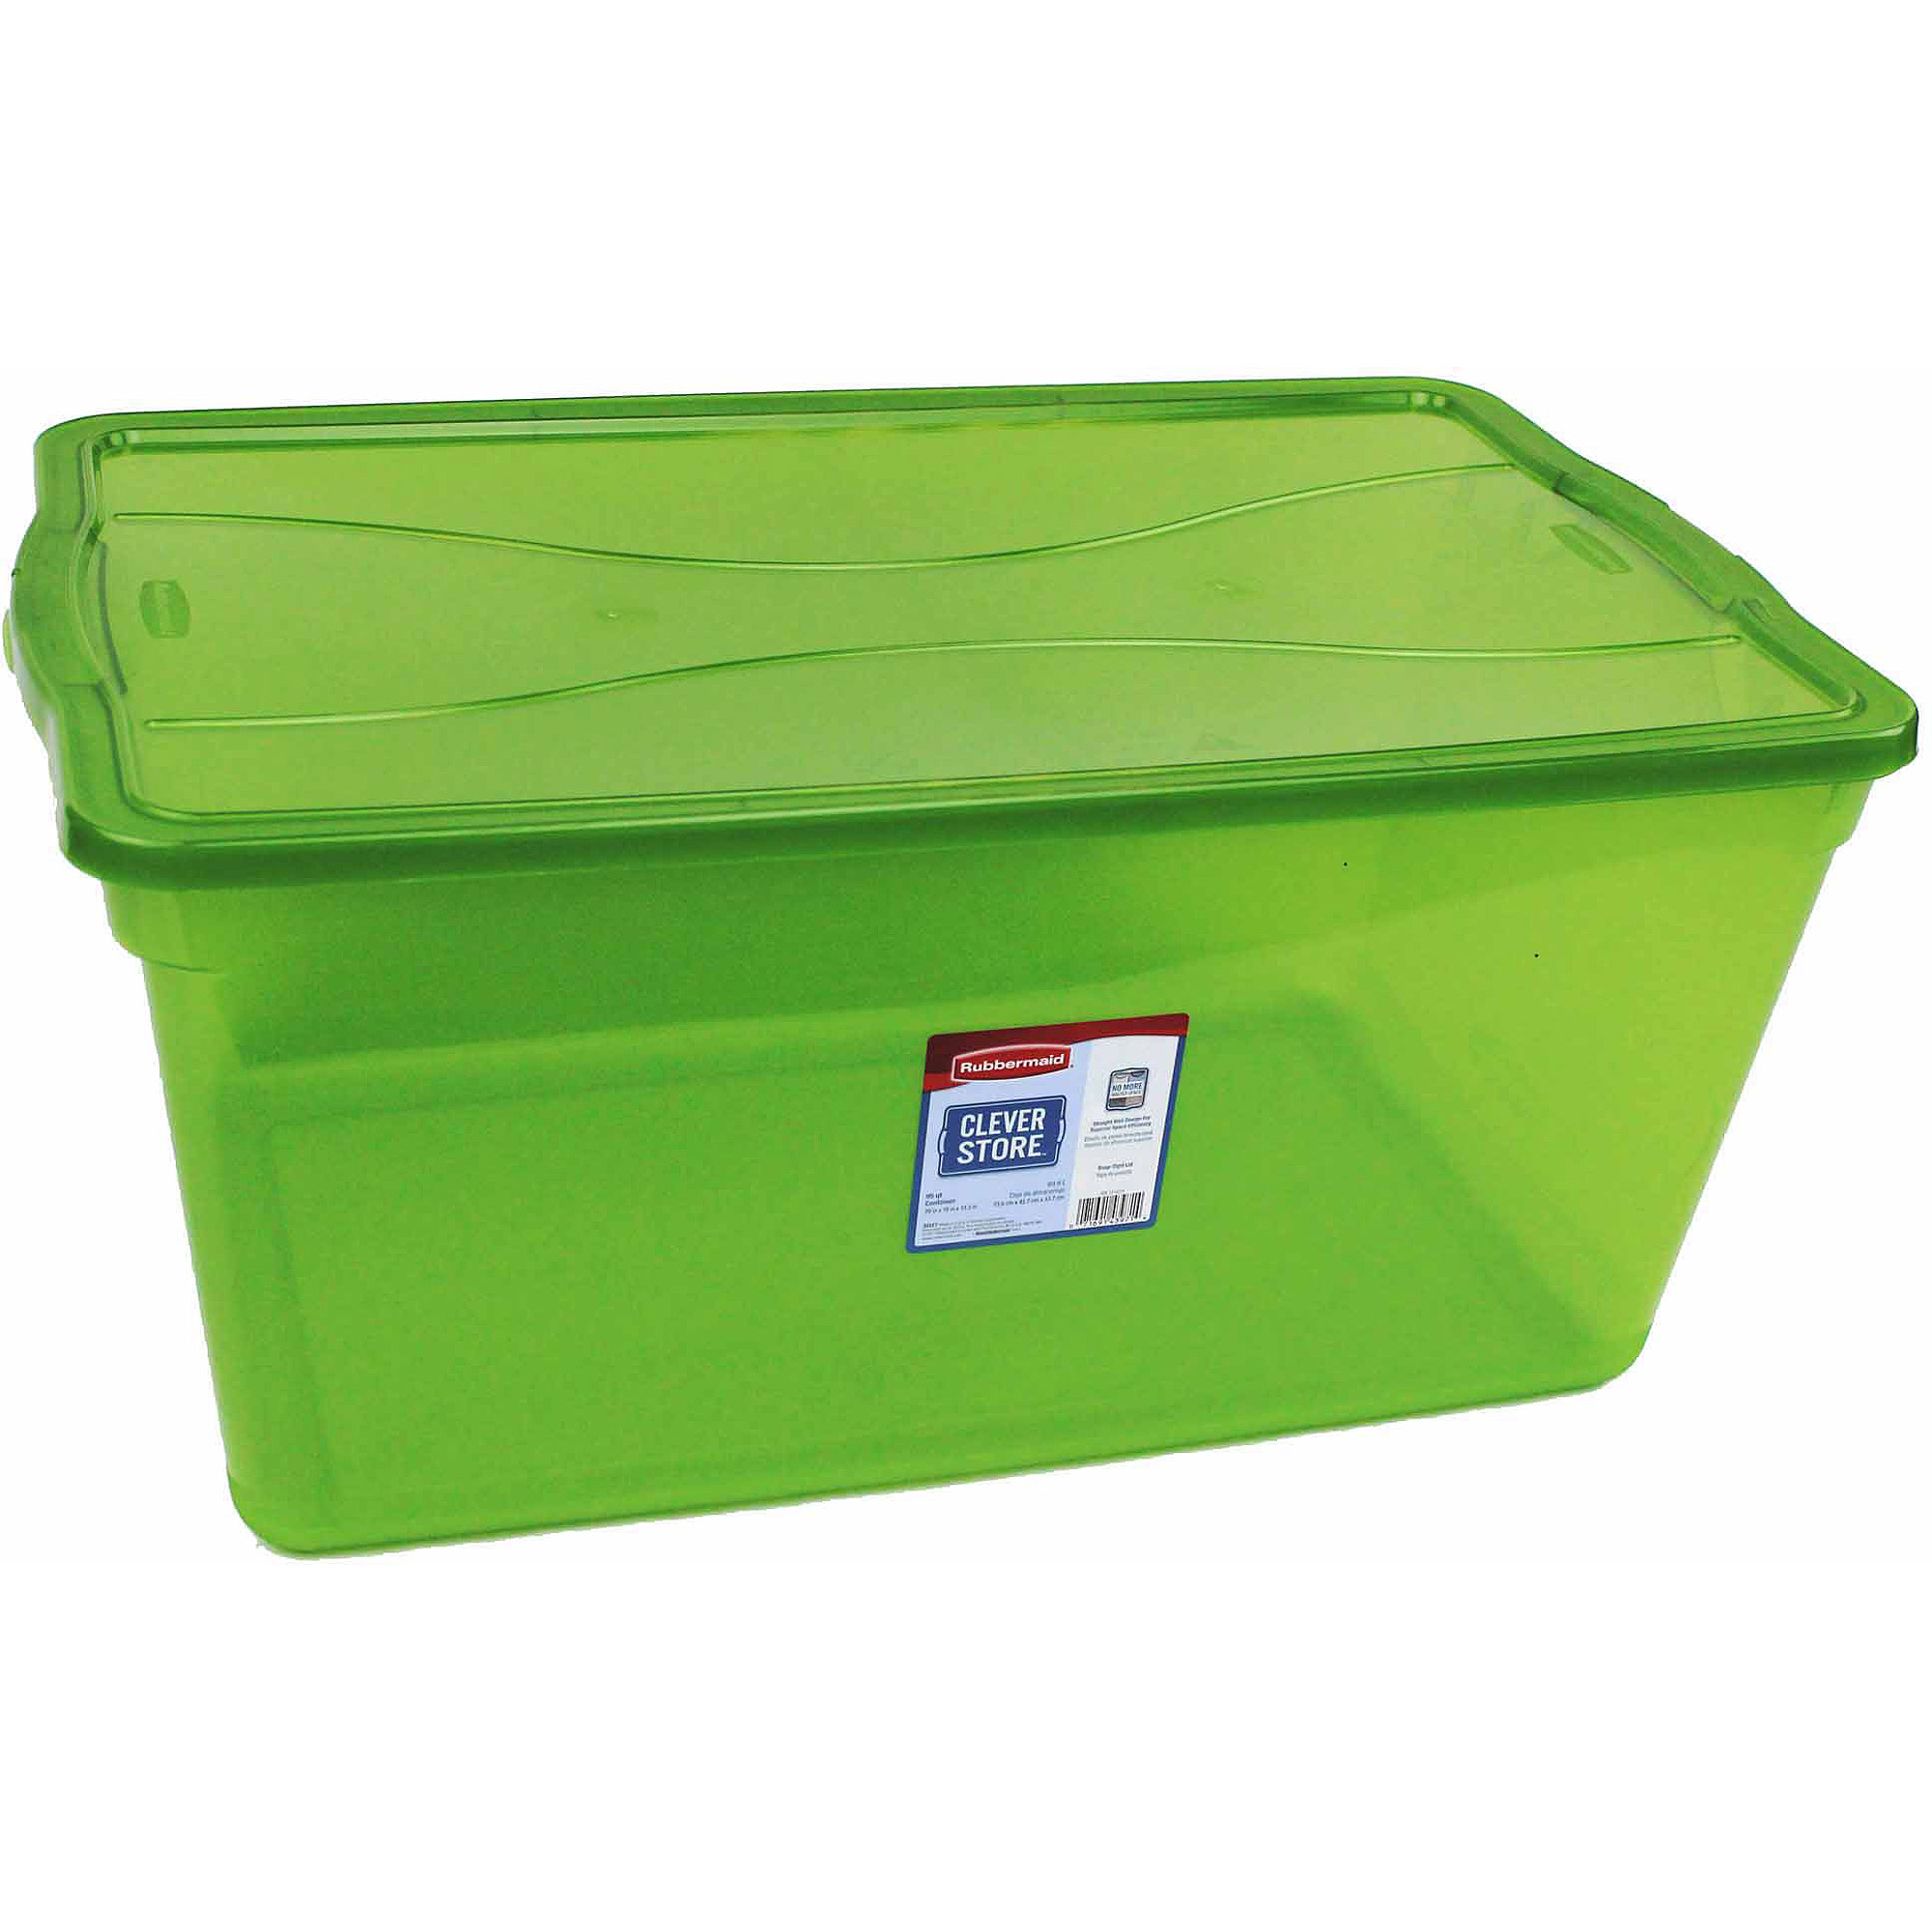 Rubbermaid Cleverstore Clear 95 Quart Non Latching Green Tint